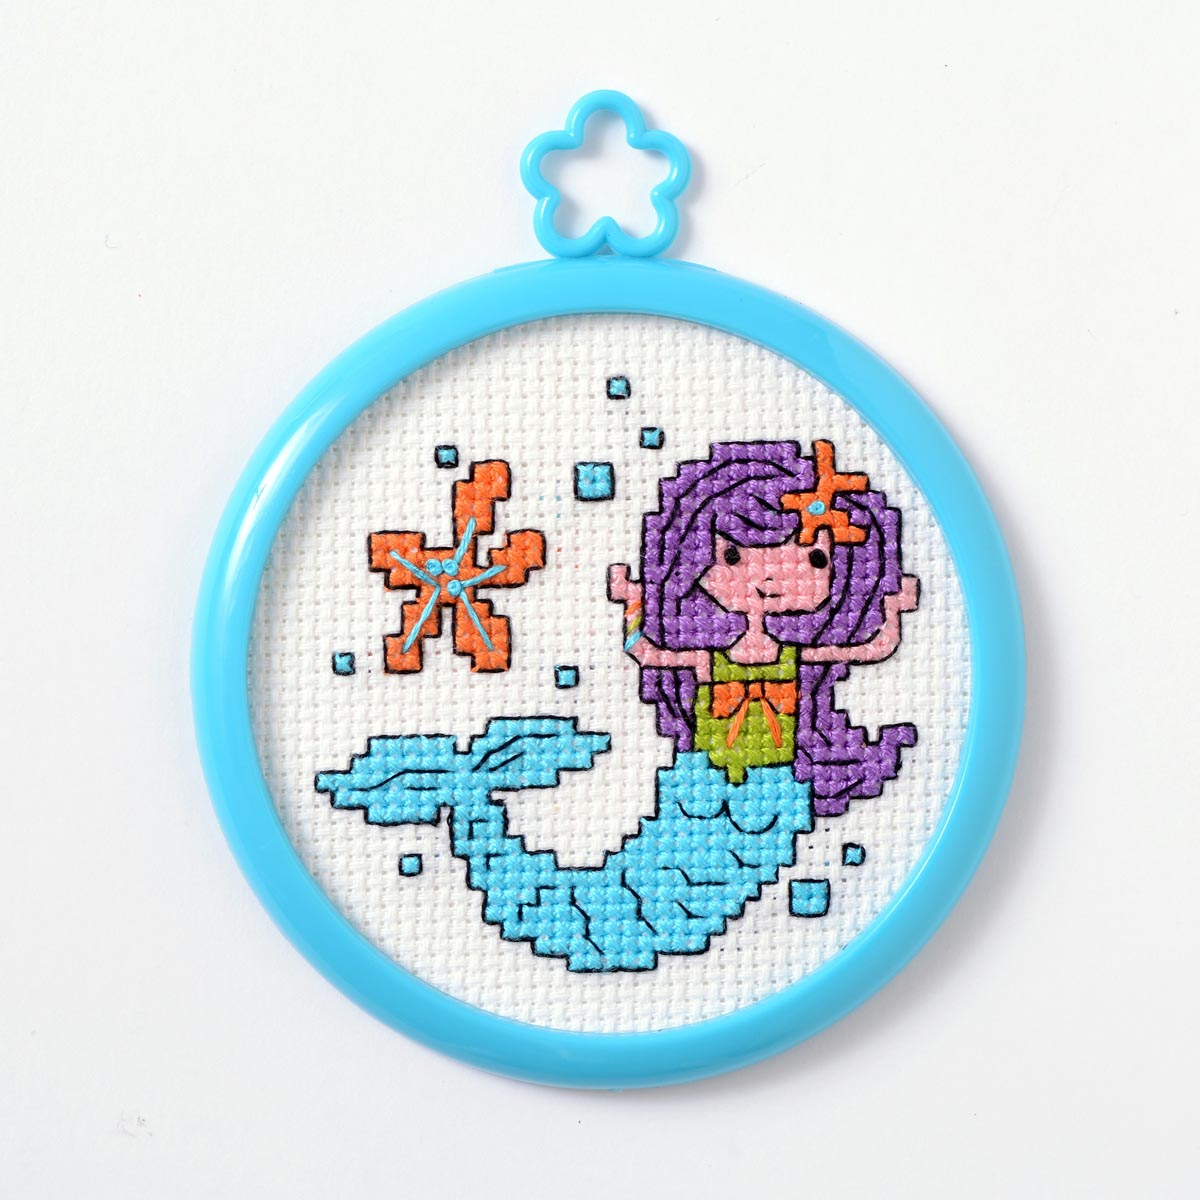 Bucilla ® My 1st Stitch™ - Counted Cross Stitch Kits - Mini - Mermaid - WM46433